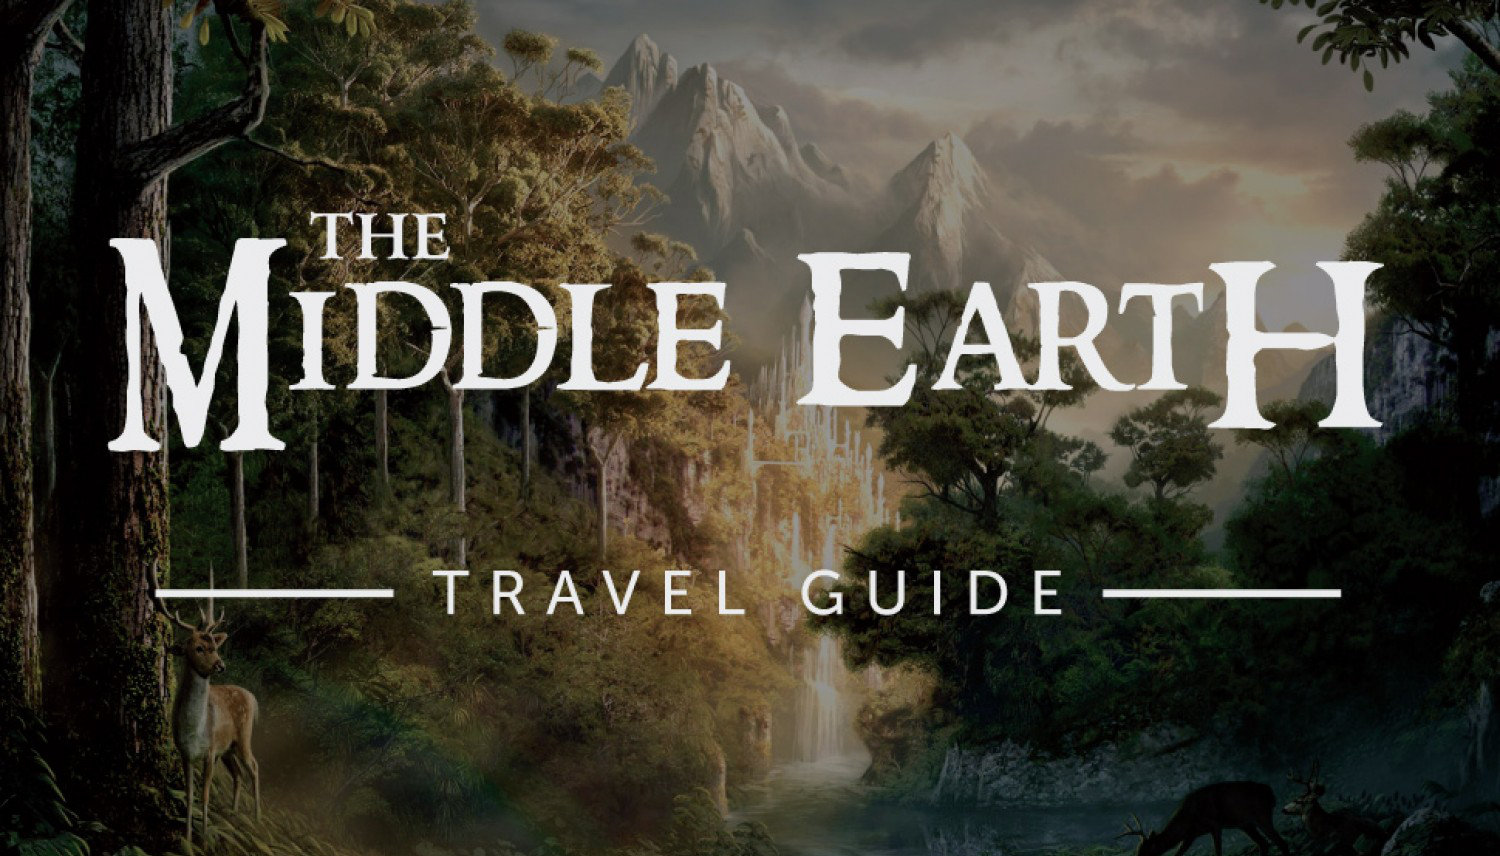 Middle-earth Travel Guide by Cheapflights.com.au